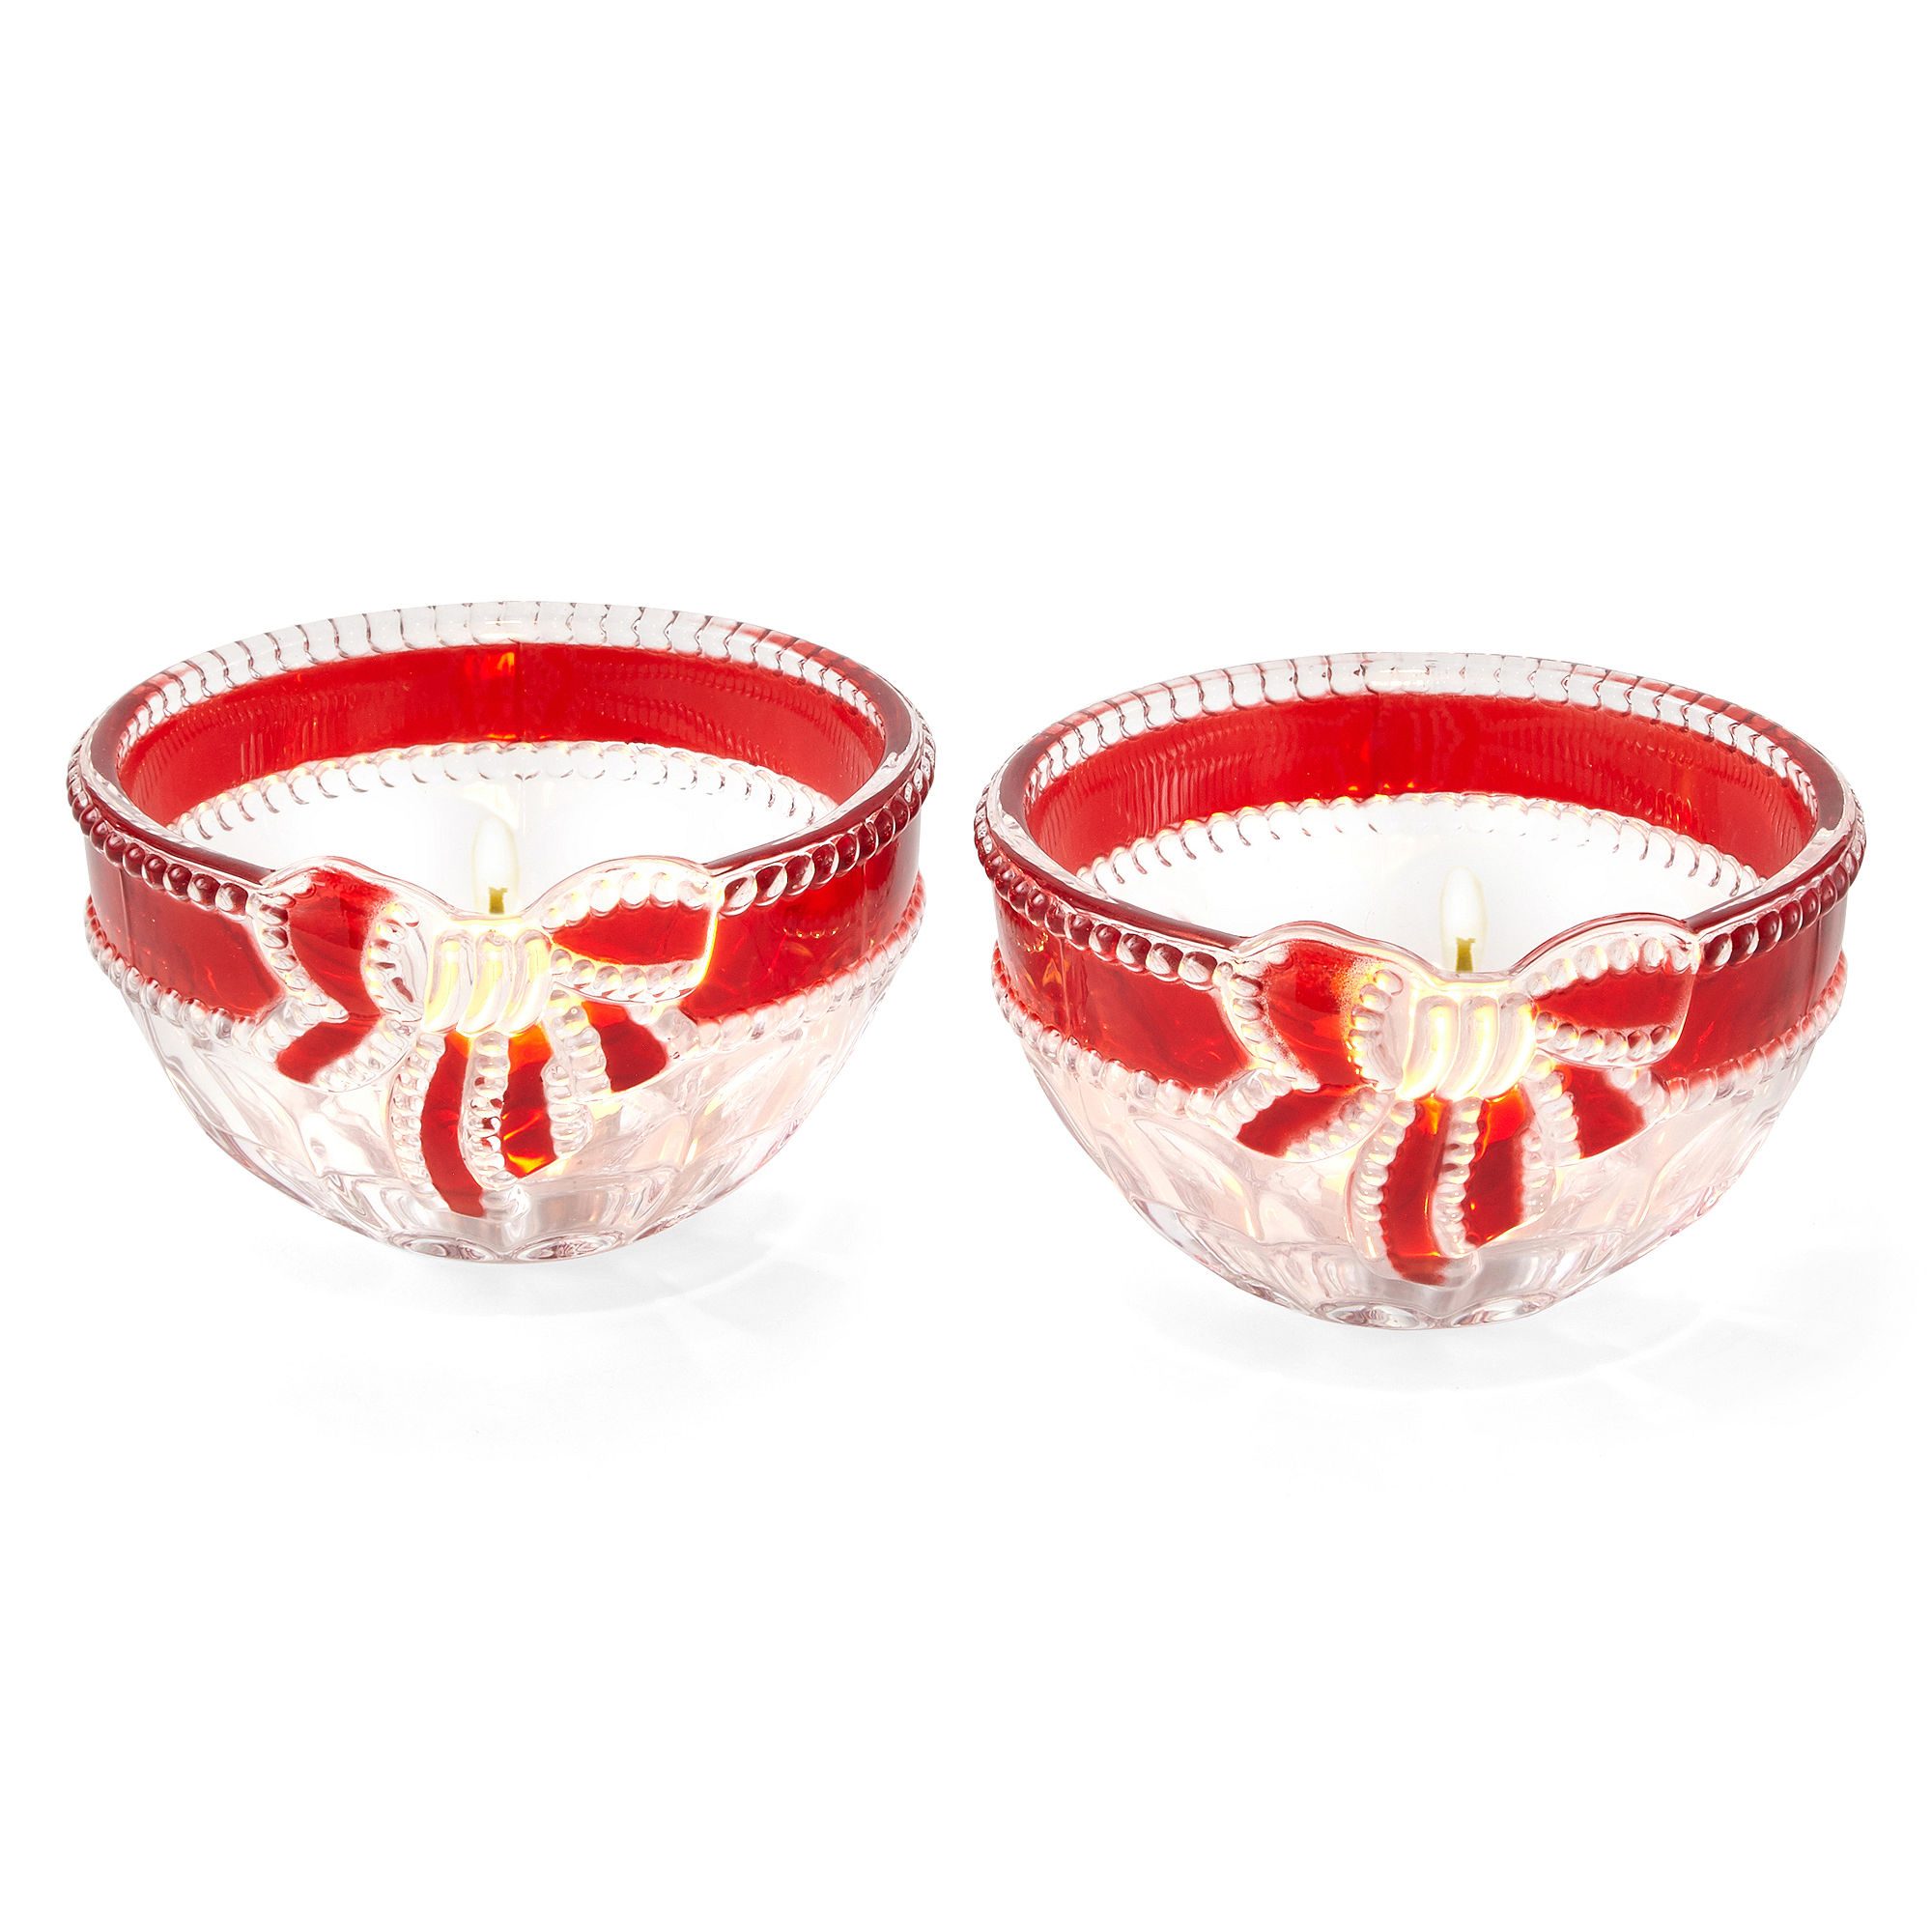 Mikasa Ruby Ribbon Set of 2 Glass Tealight Candle Holders